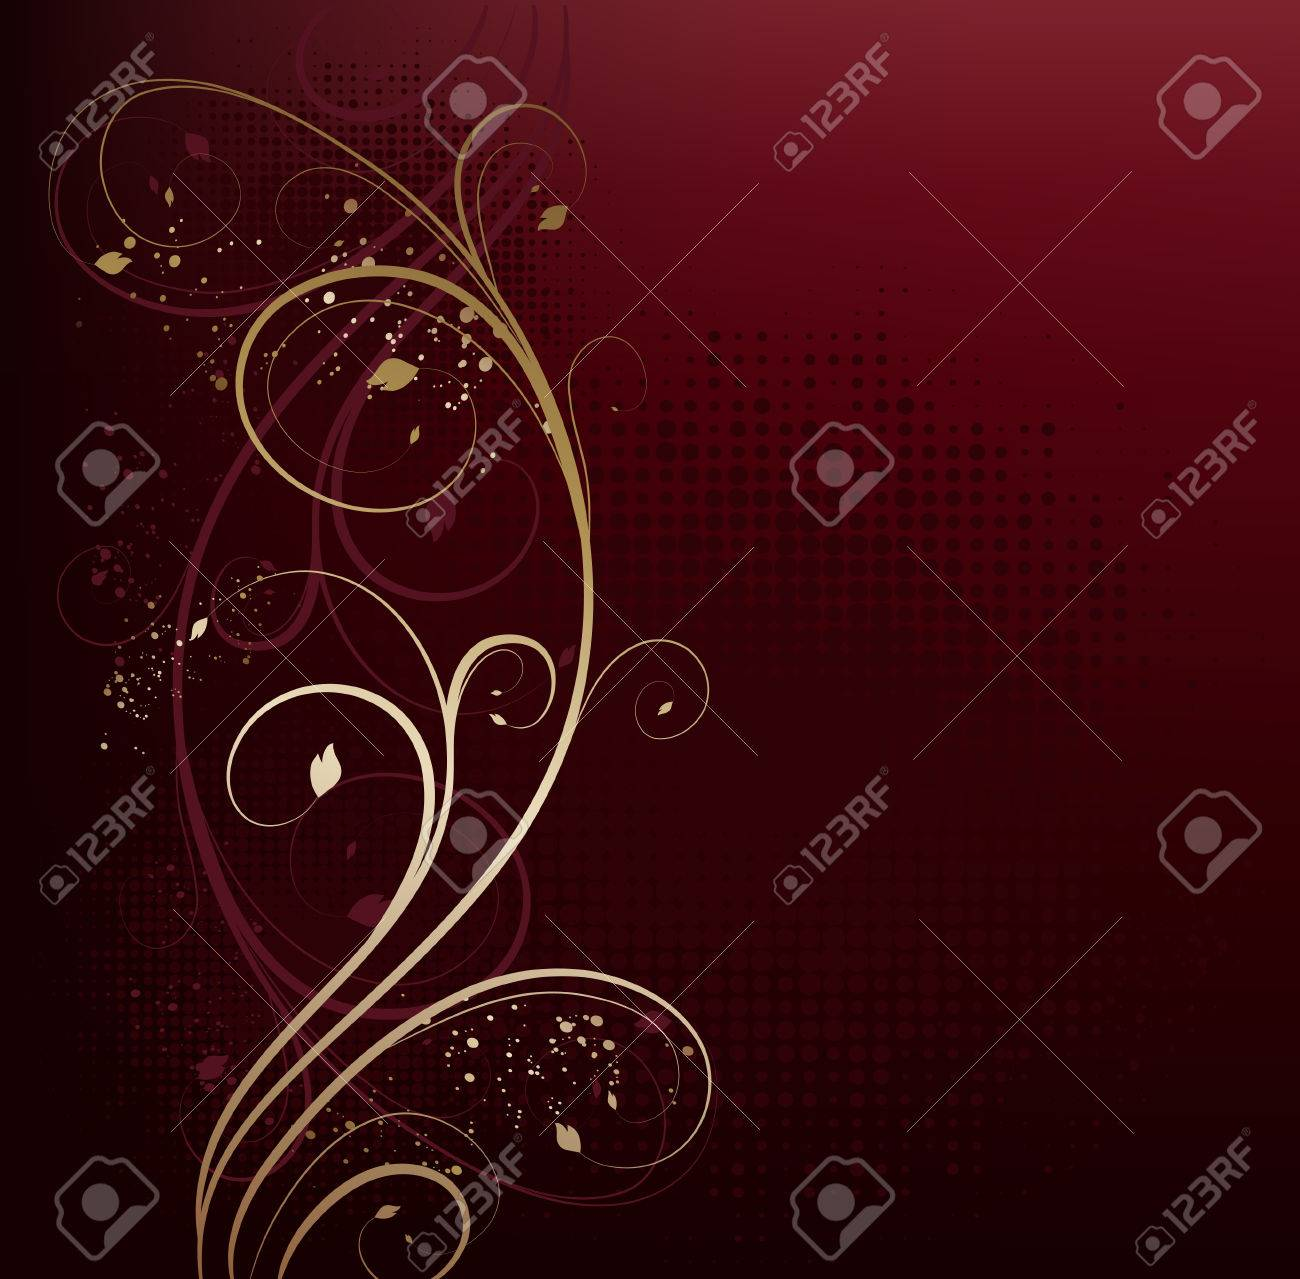 Vector red and gold beauty floral background - 8123374